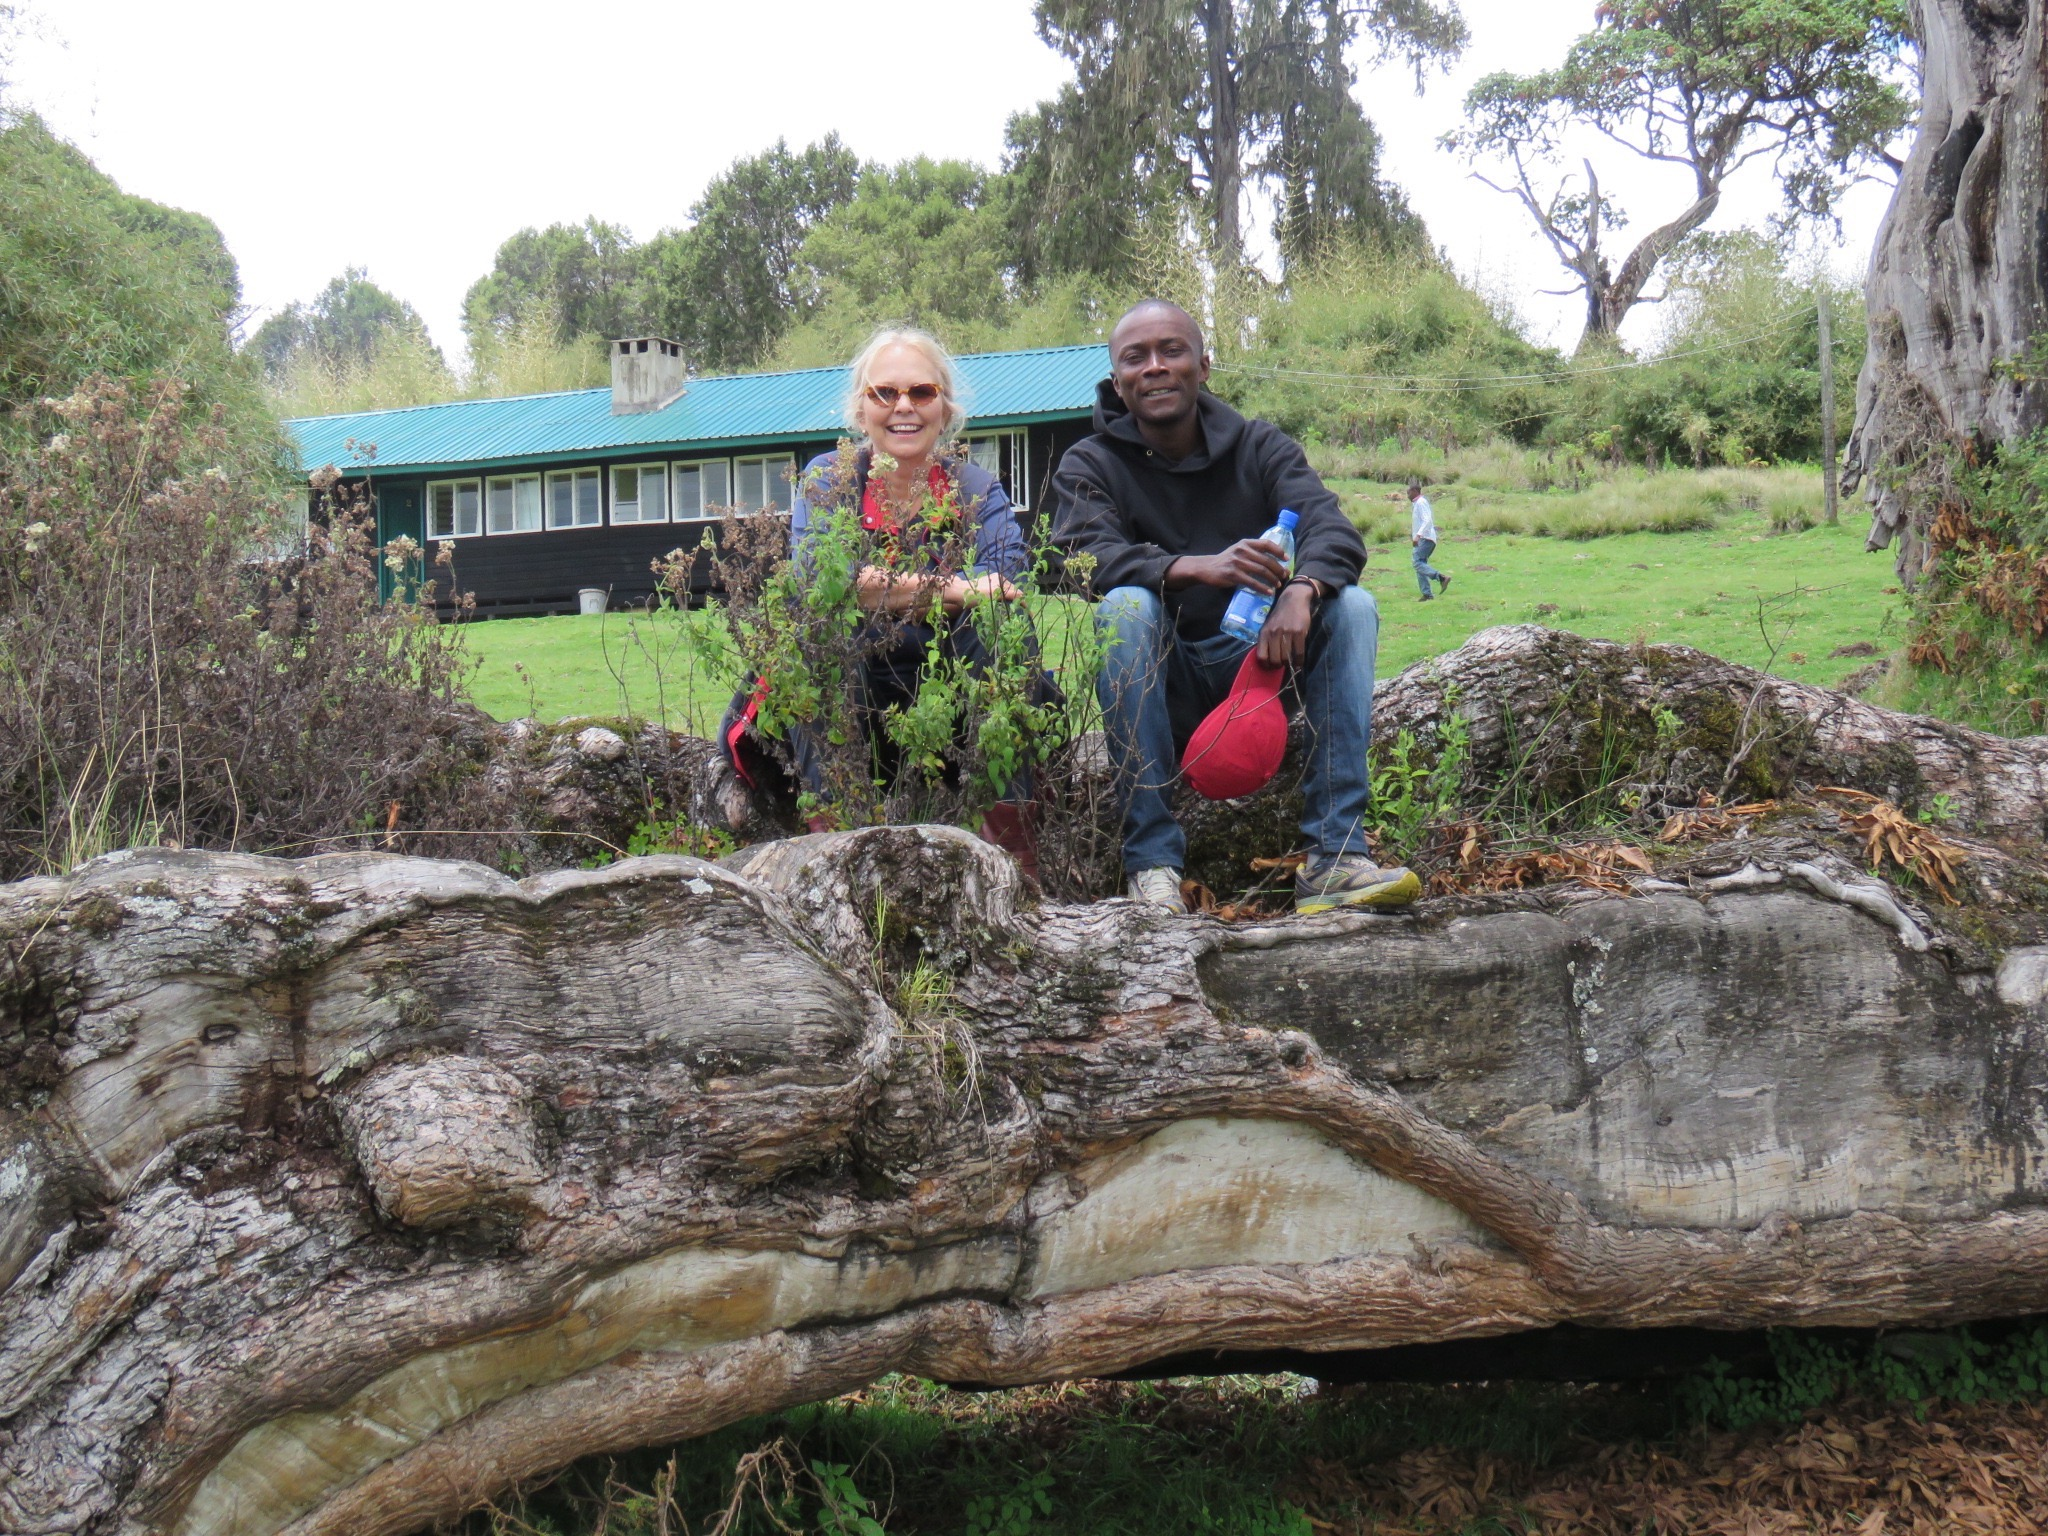 Visitors will enjoy hiking around beautiful Mount Kenya National Park and can stay overnight at the lodges with campfires under the stars